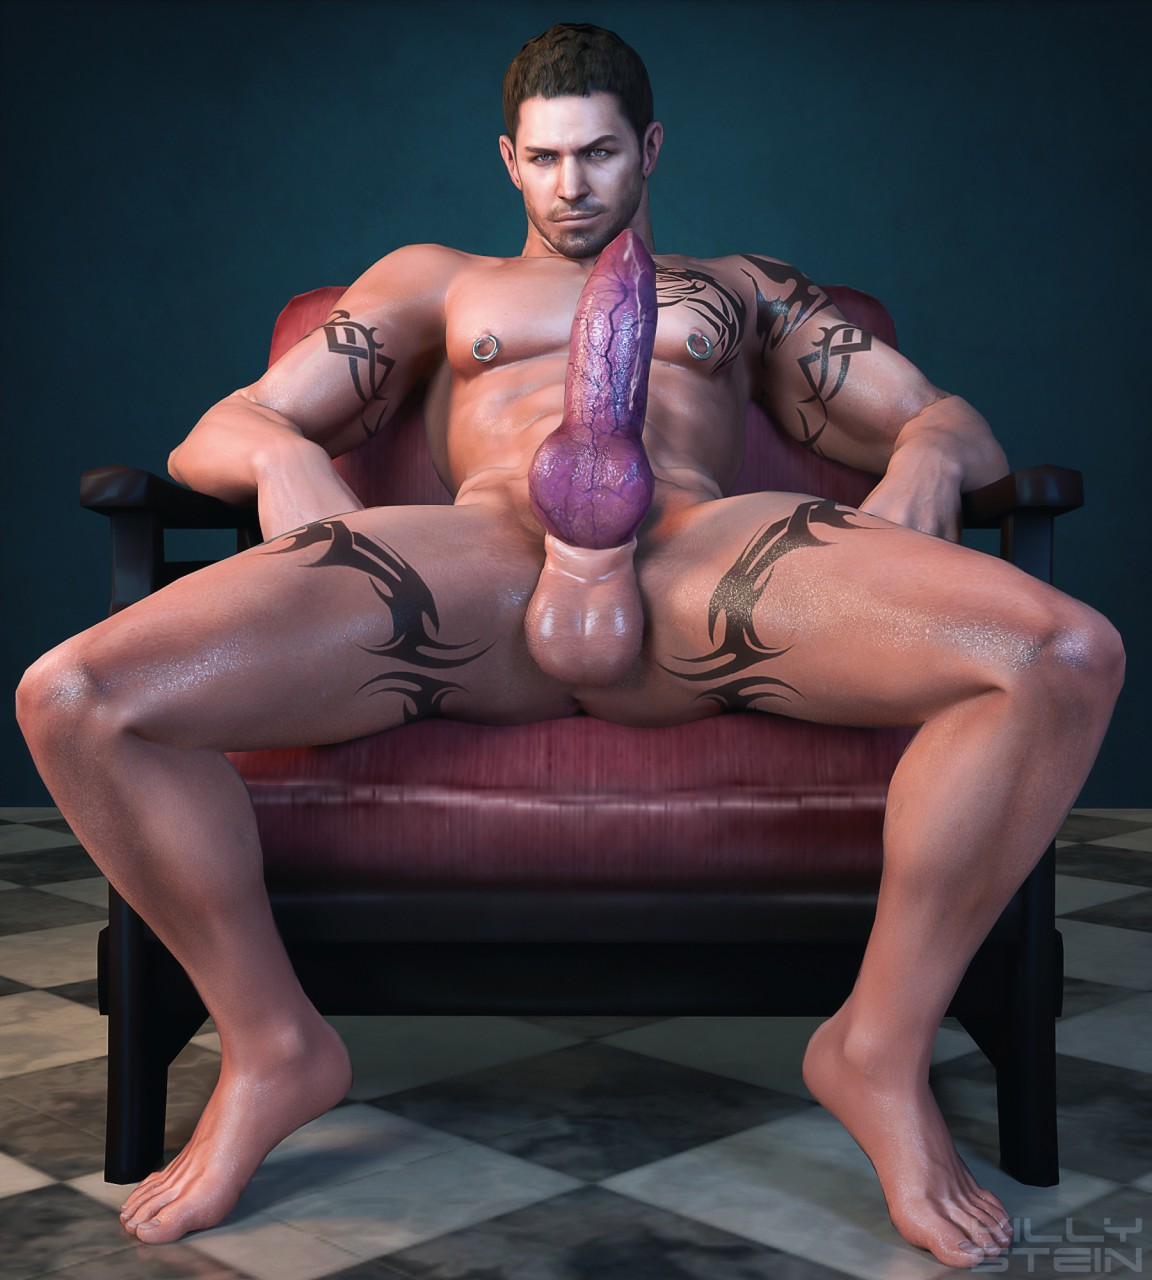 Free gay hairy muscle videos